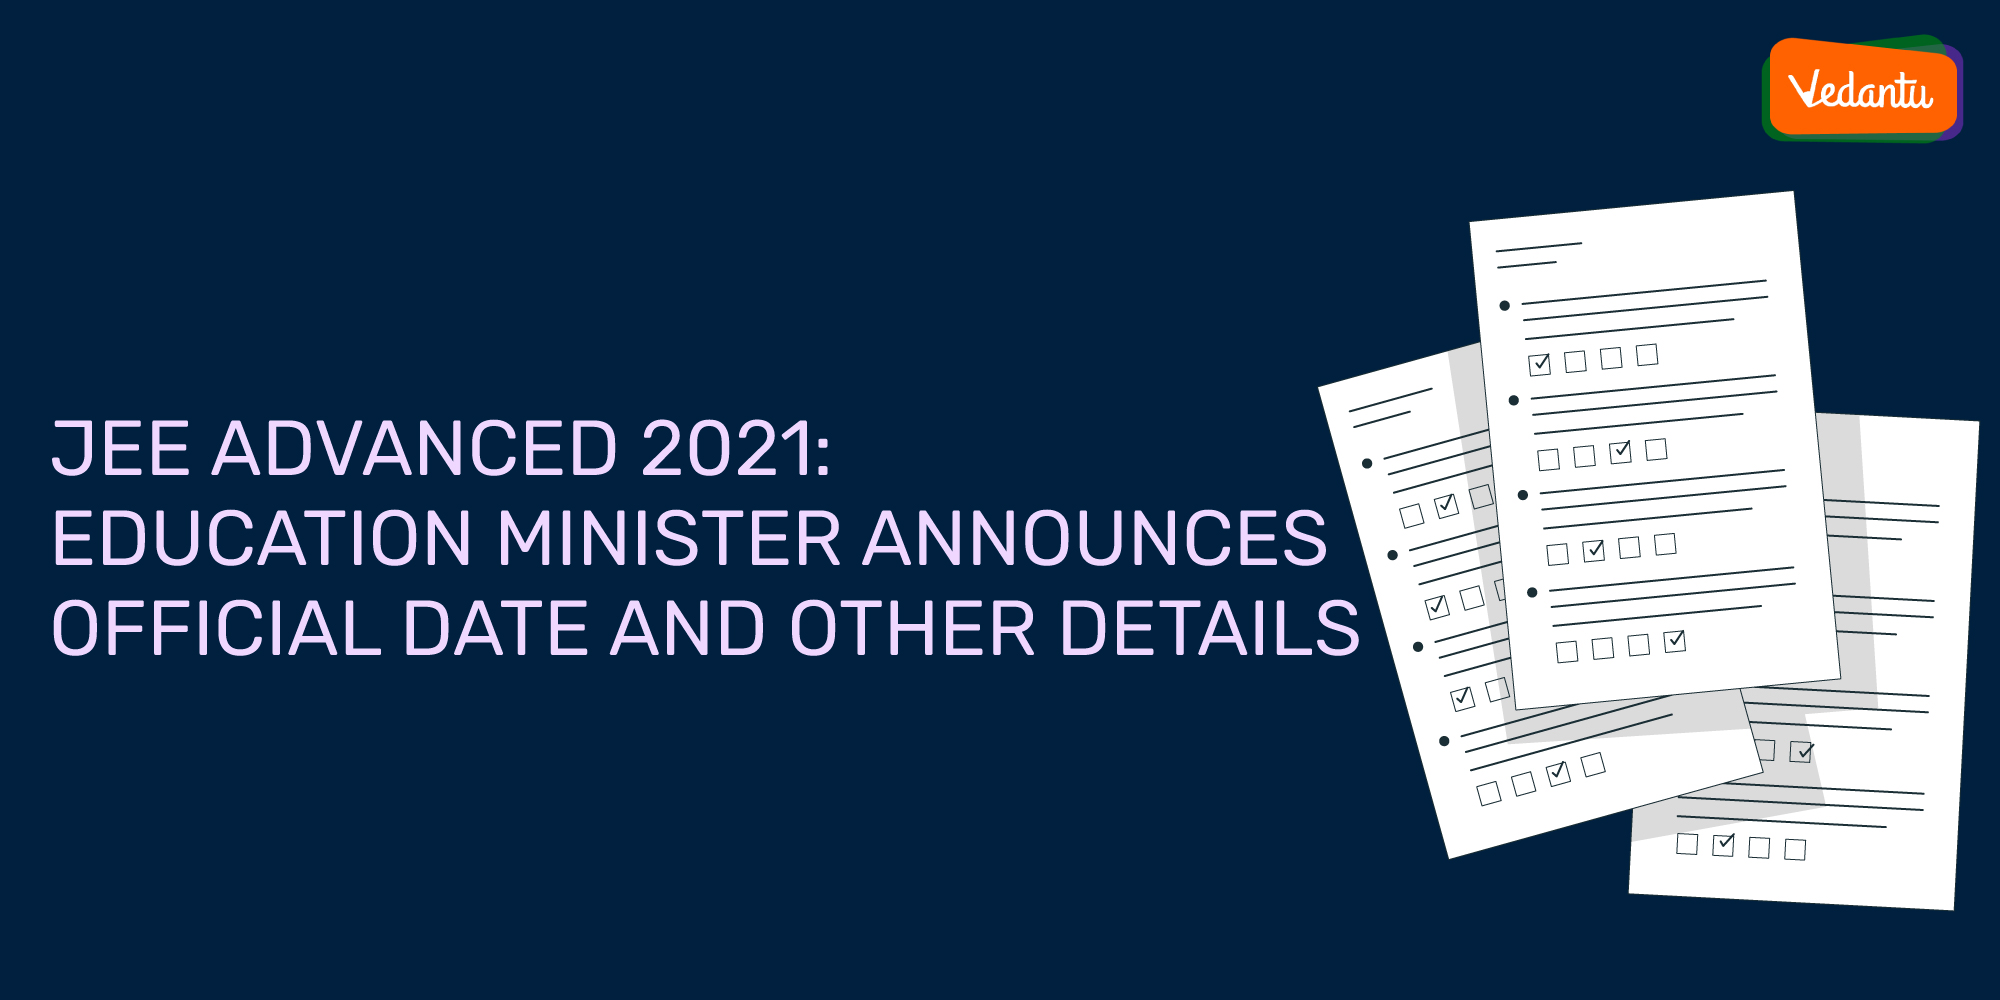 JEE Advanced 2021: Education Minister Announces Official Date And Other Details